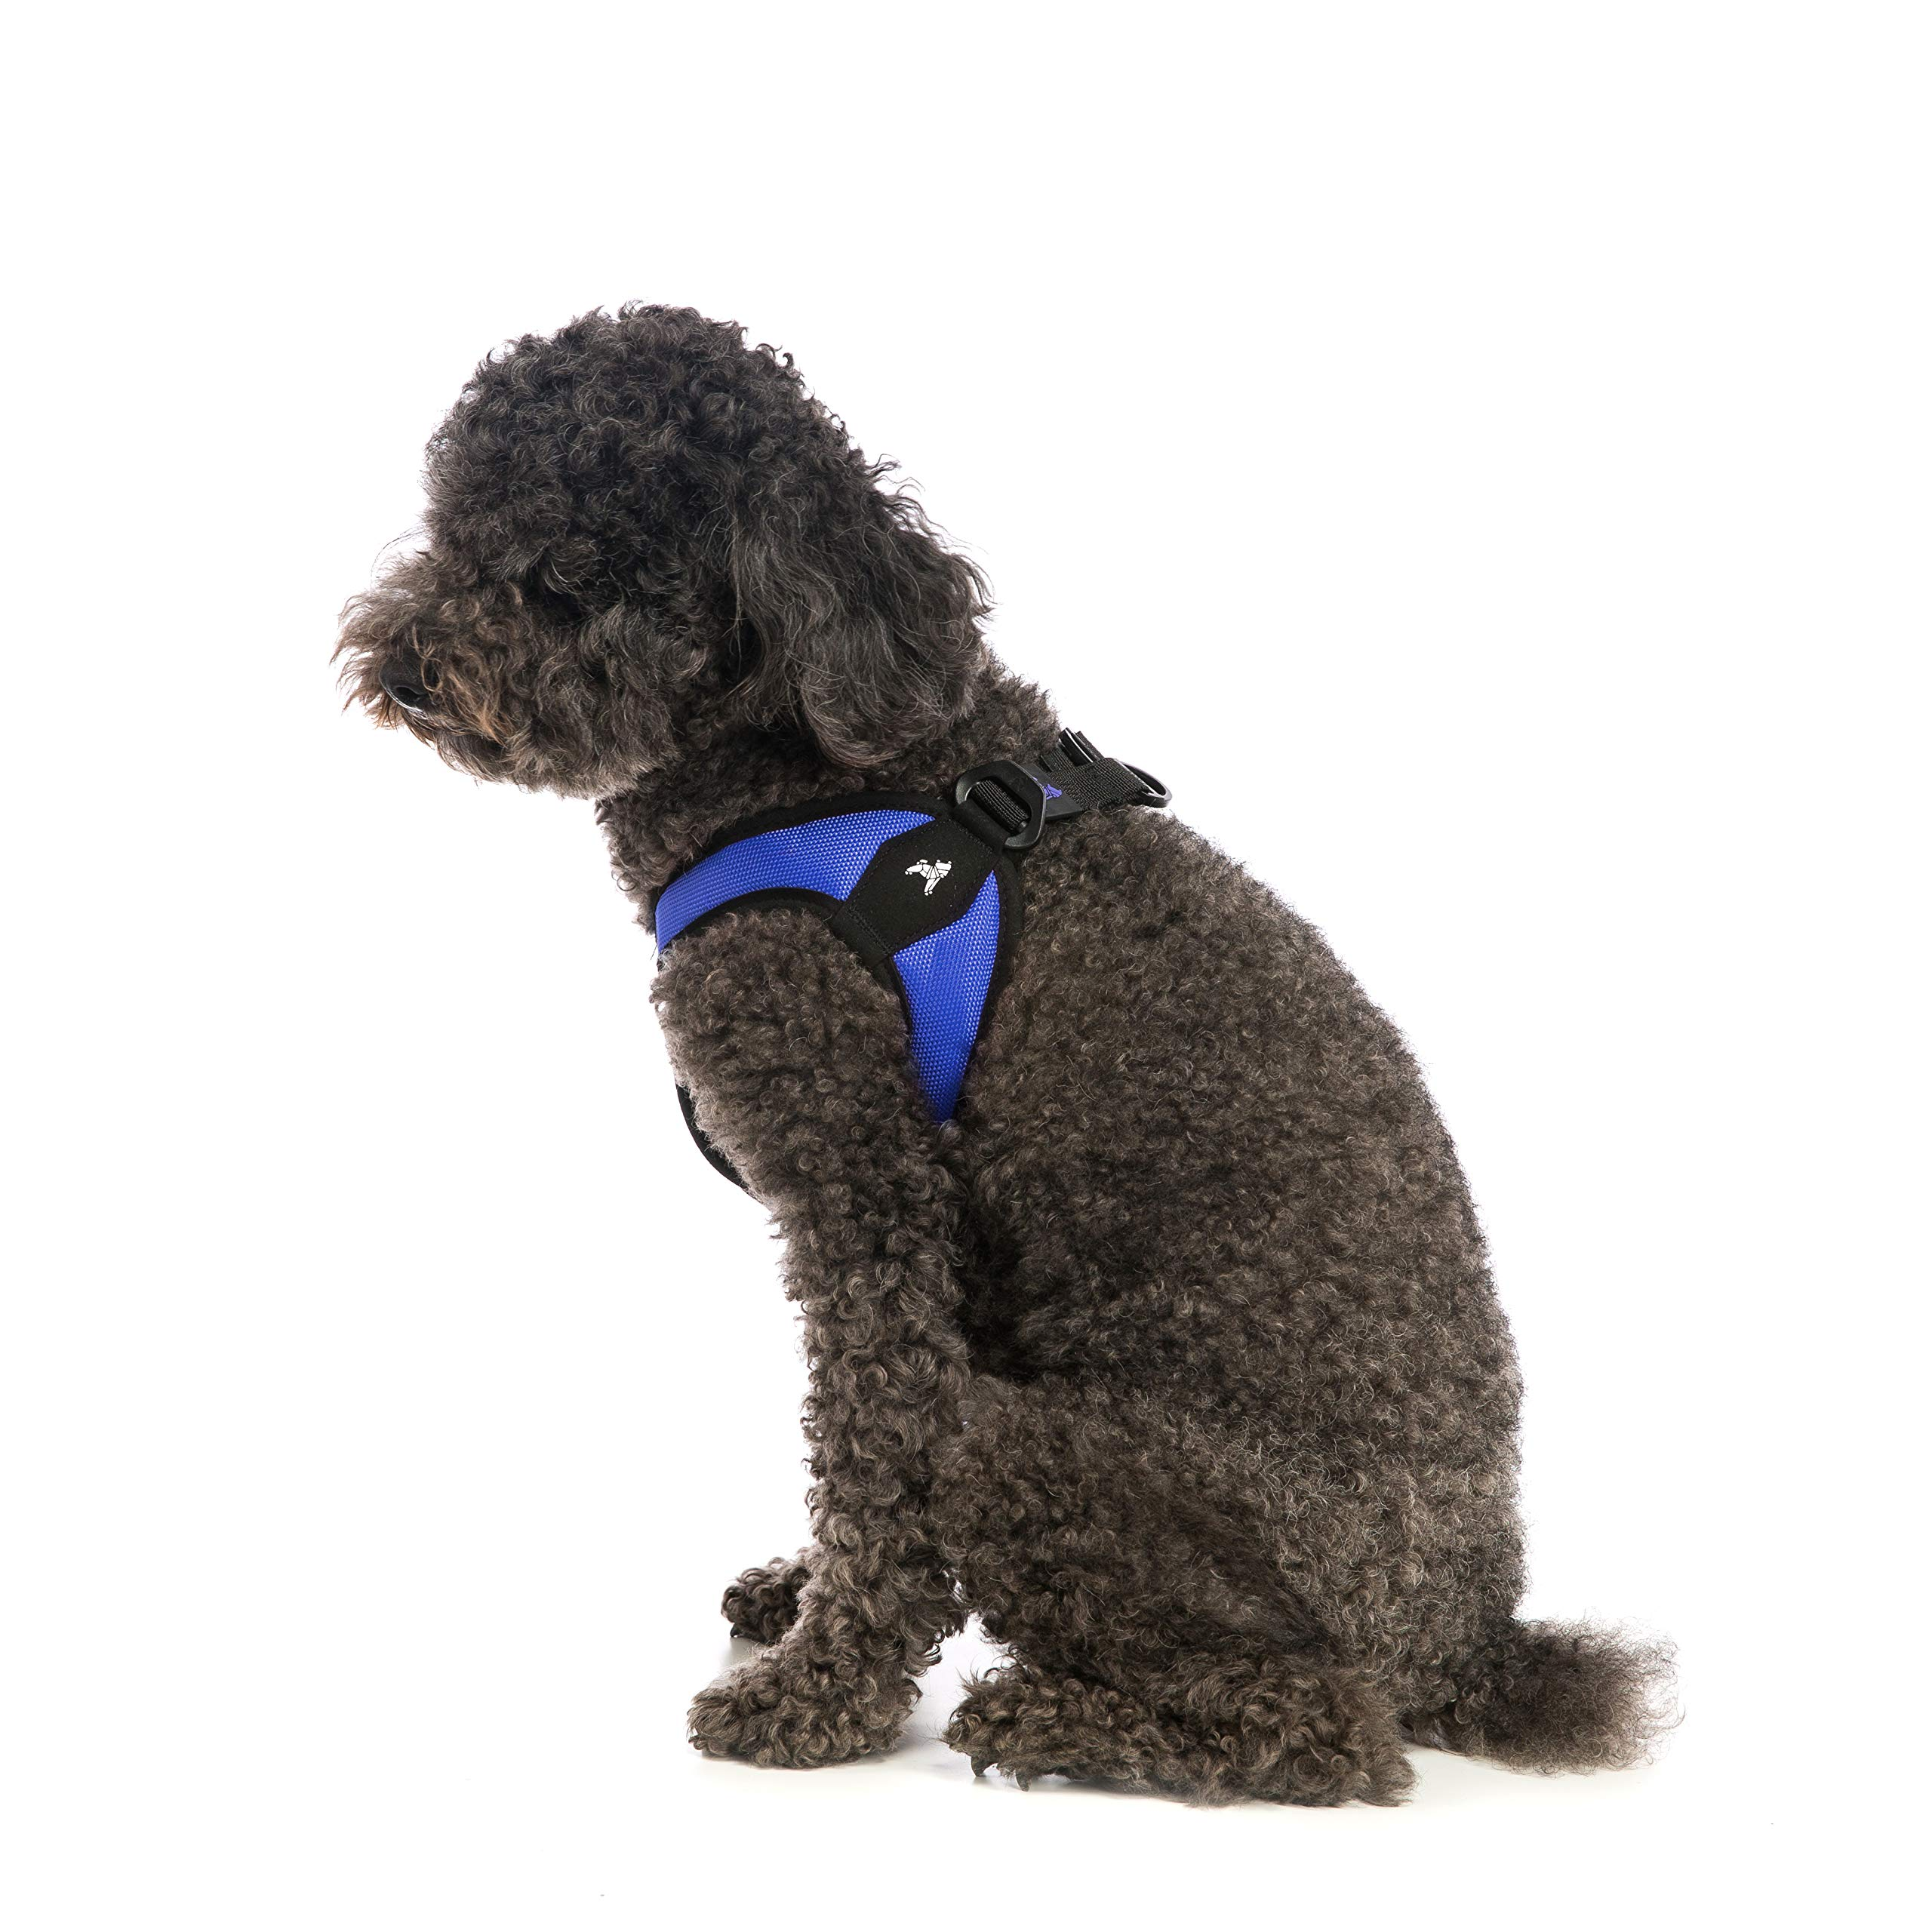 Gooby - Escape Free Easy Fit Harness, Small Dog Step-in Harness for Dogs That Like to Escape Their Harness, Blue, Medium by Gooby